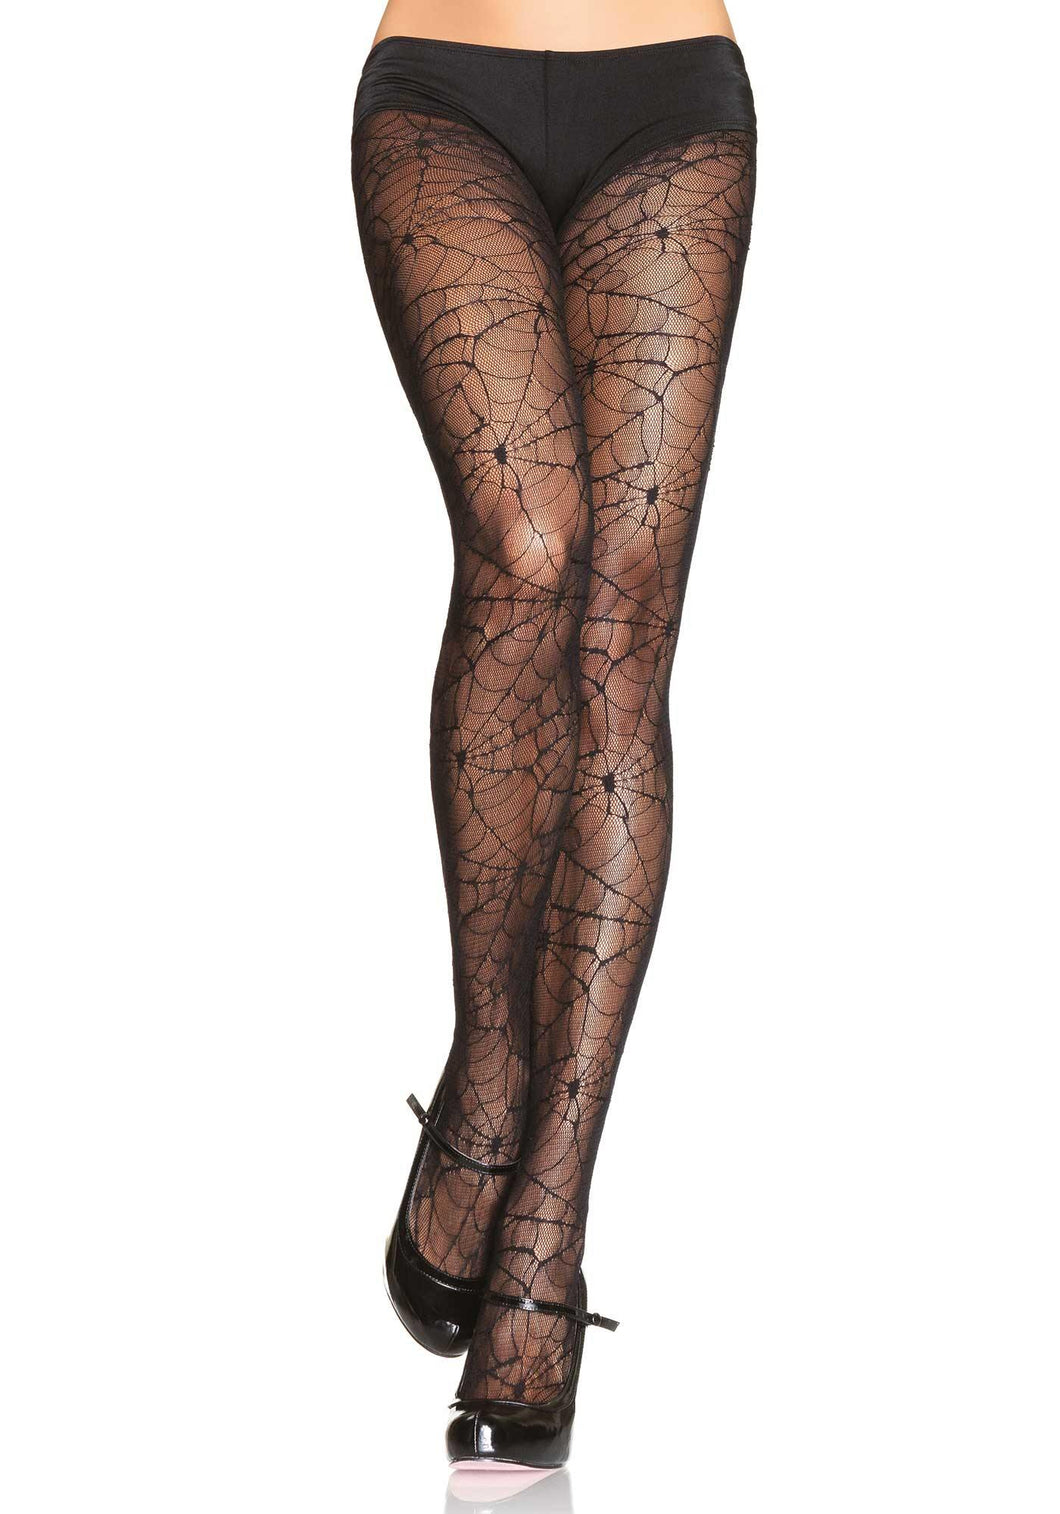 Black Spider Lace Tights - Amore Lingerie